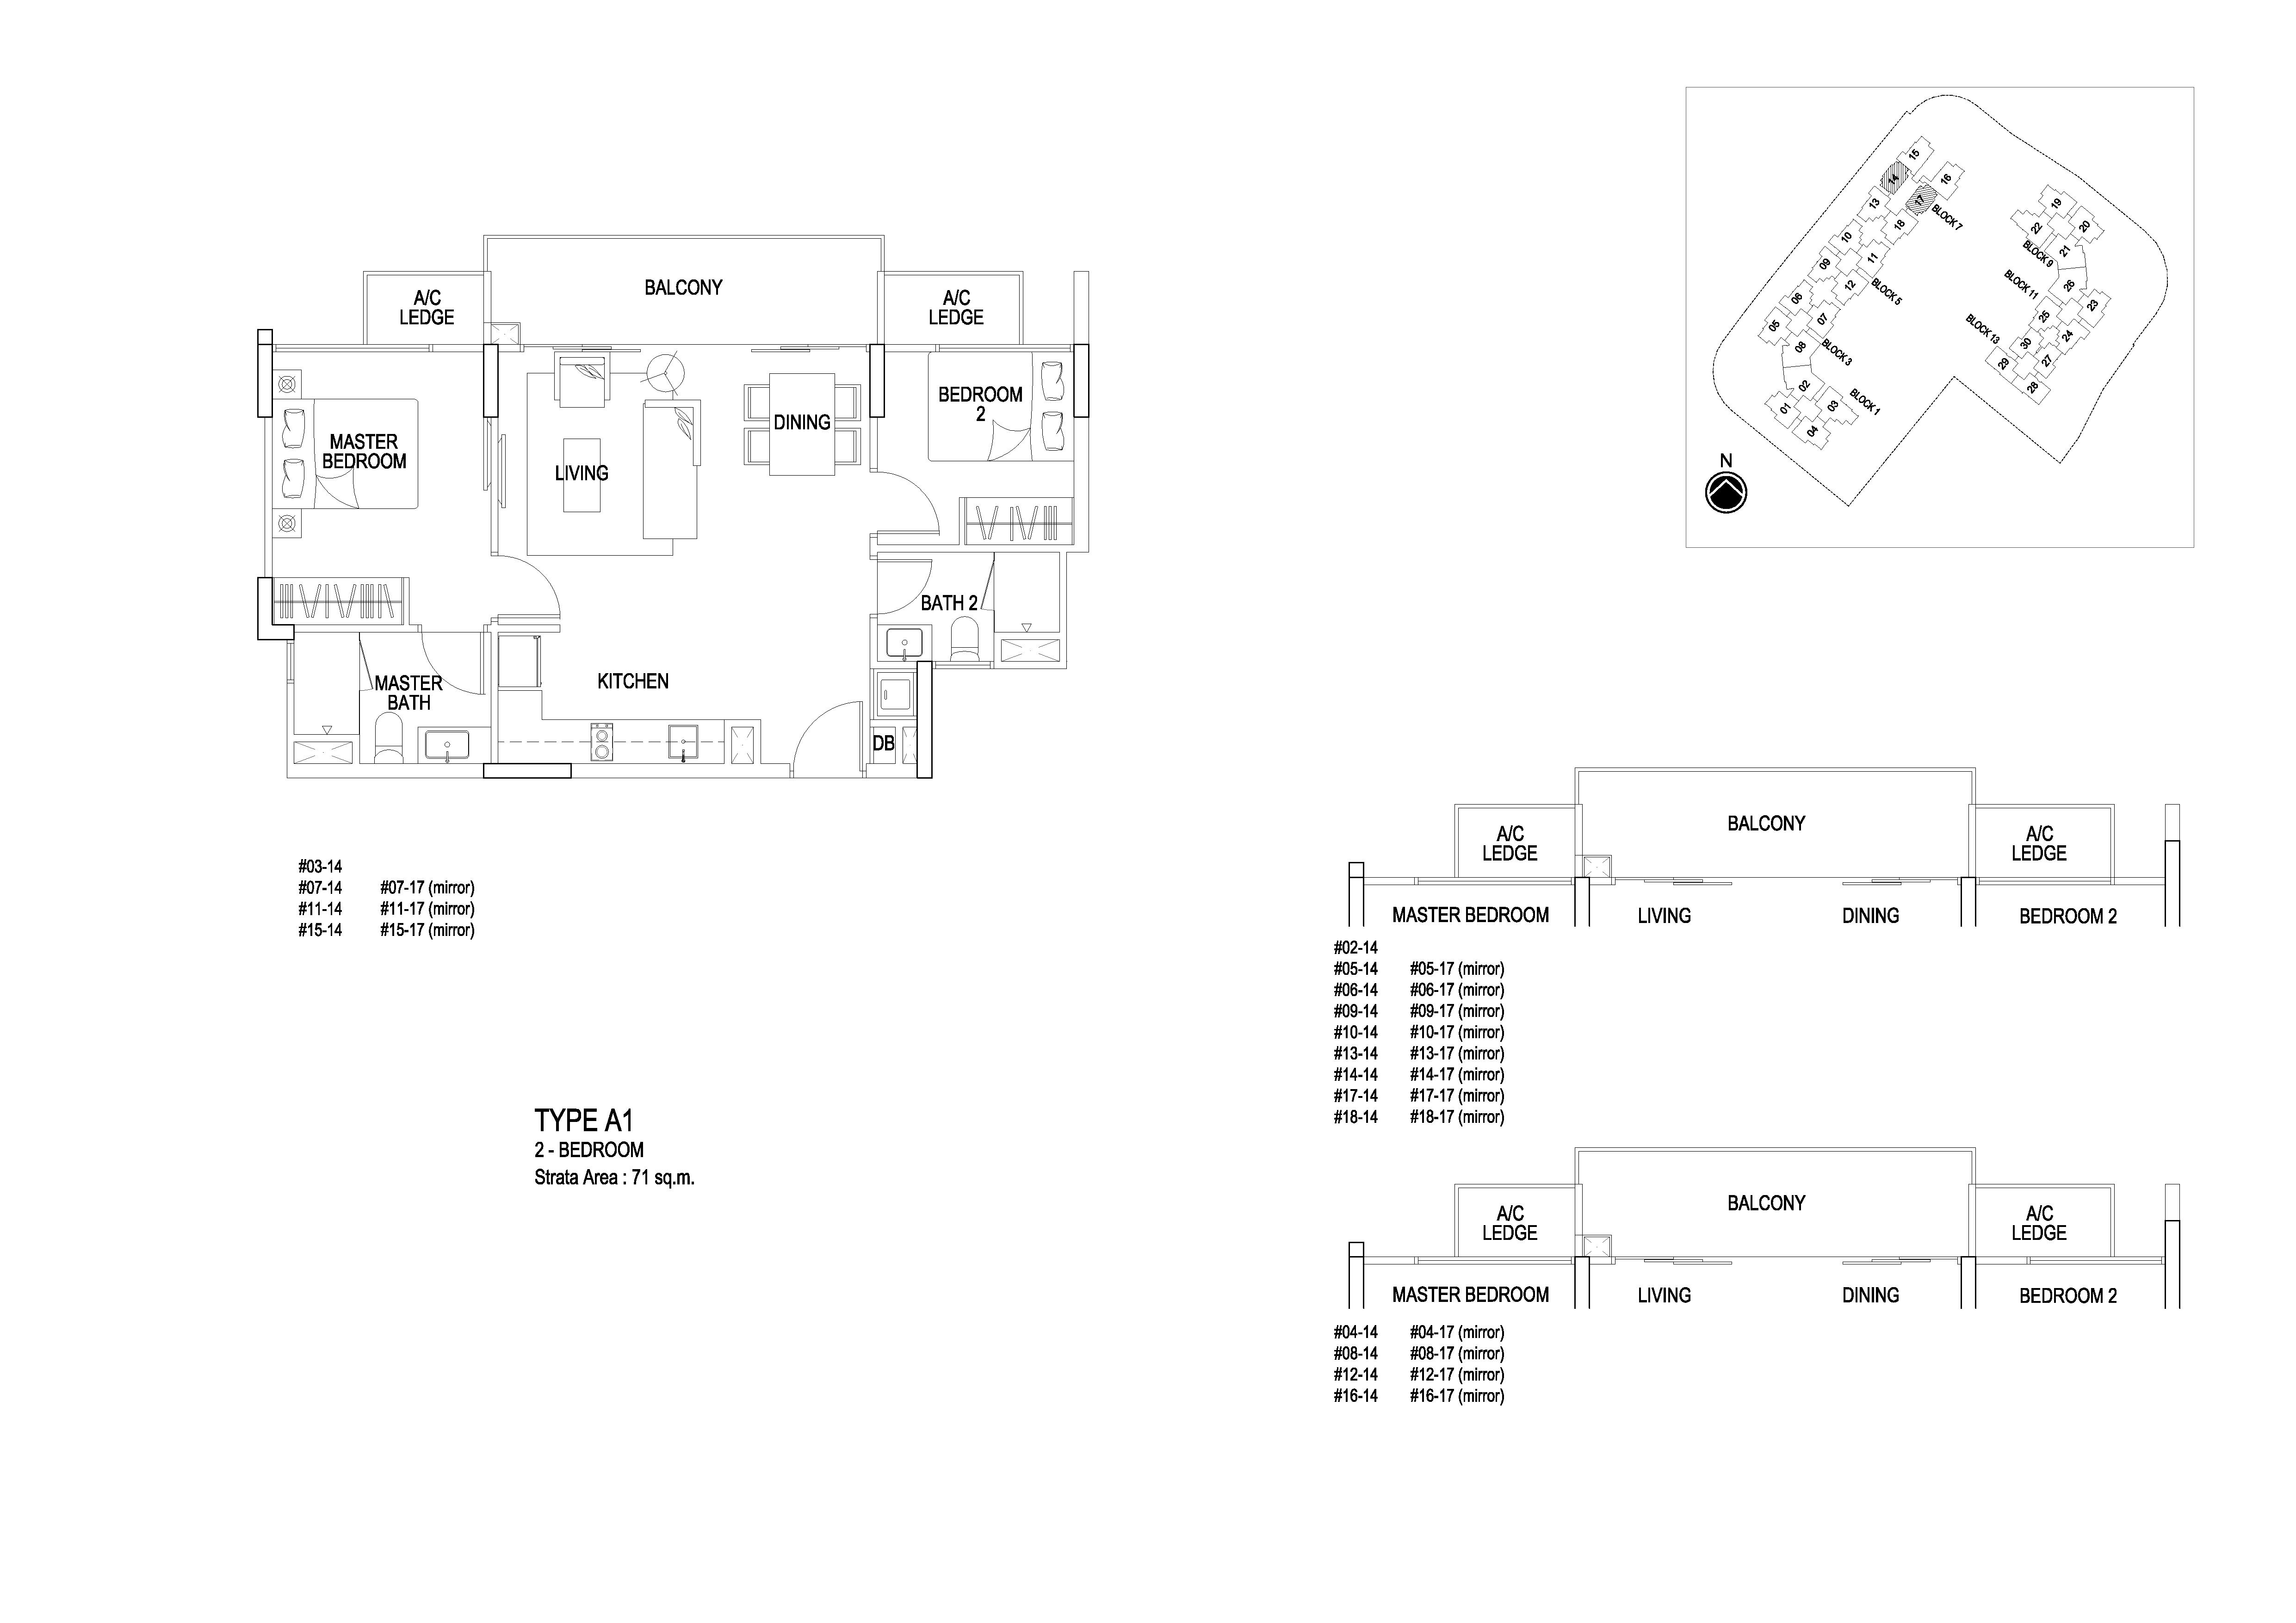 Flo Residence 2 Bedroom Floor Plans Type A1